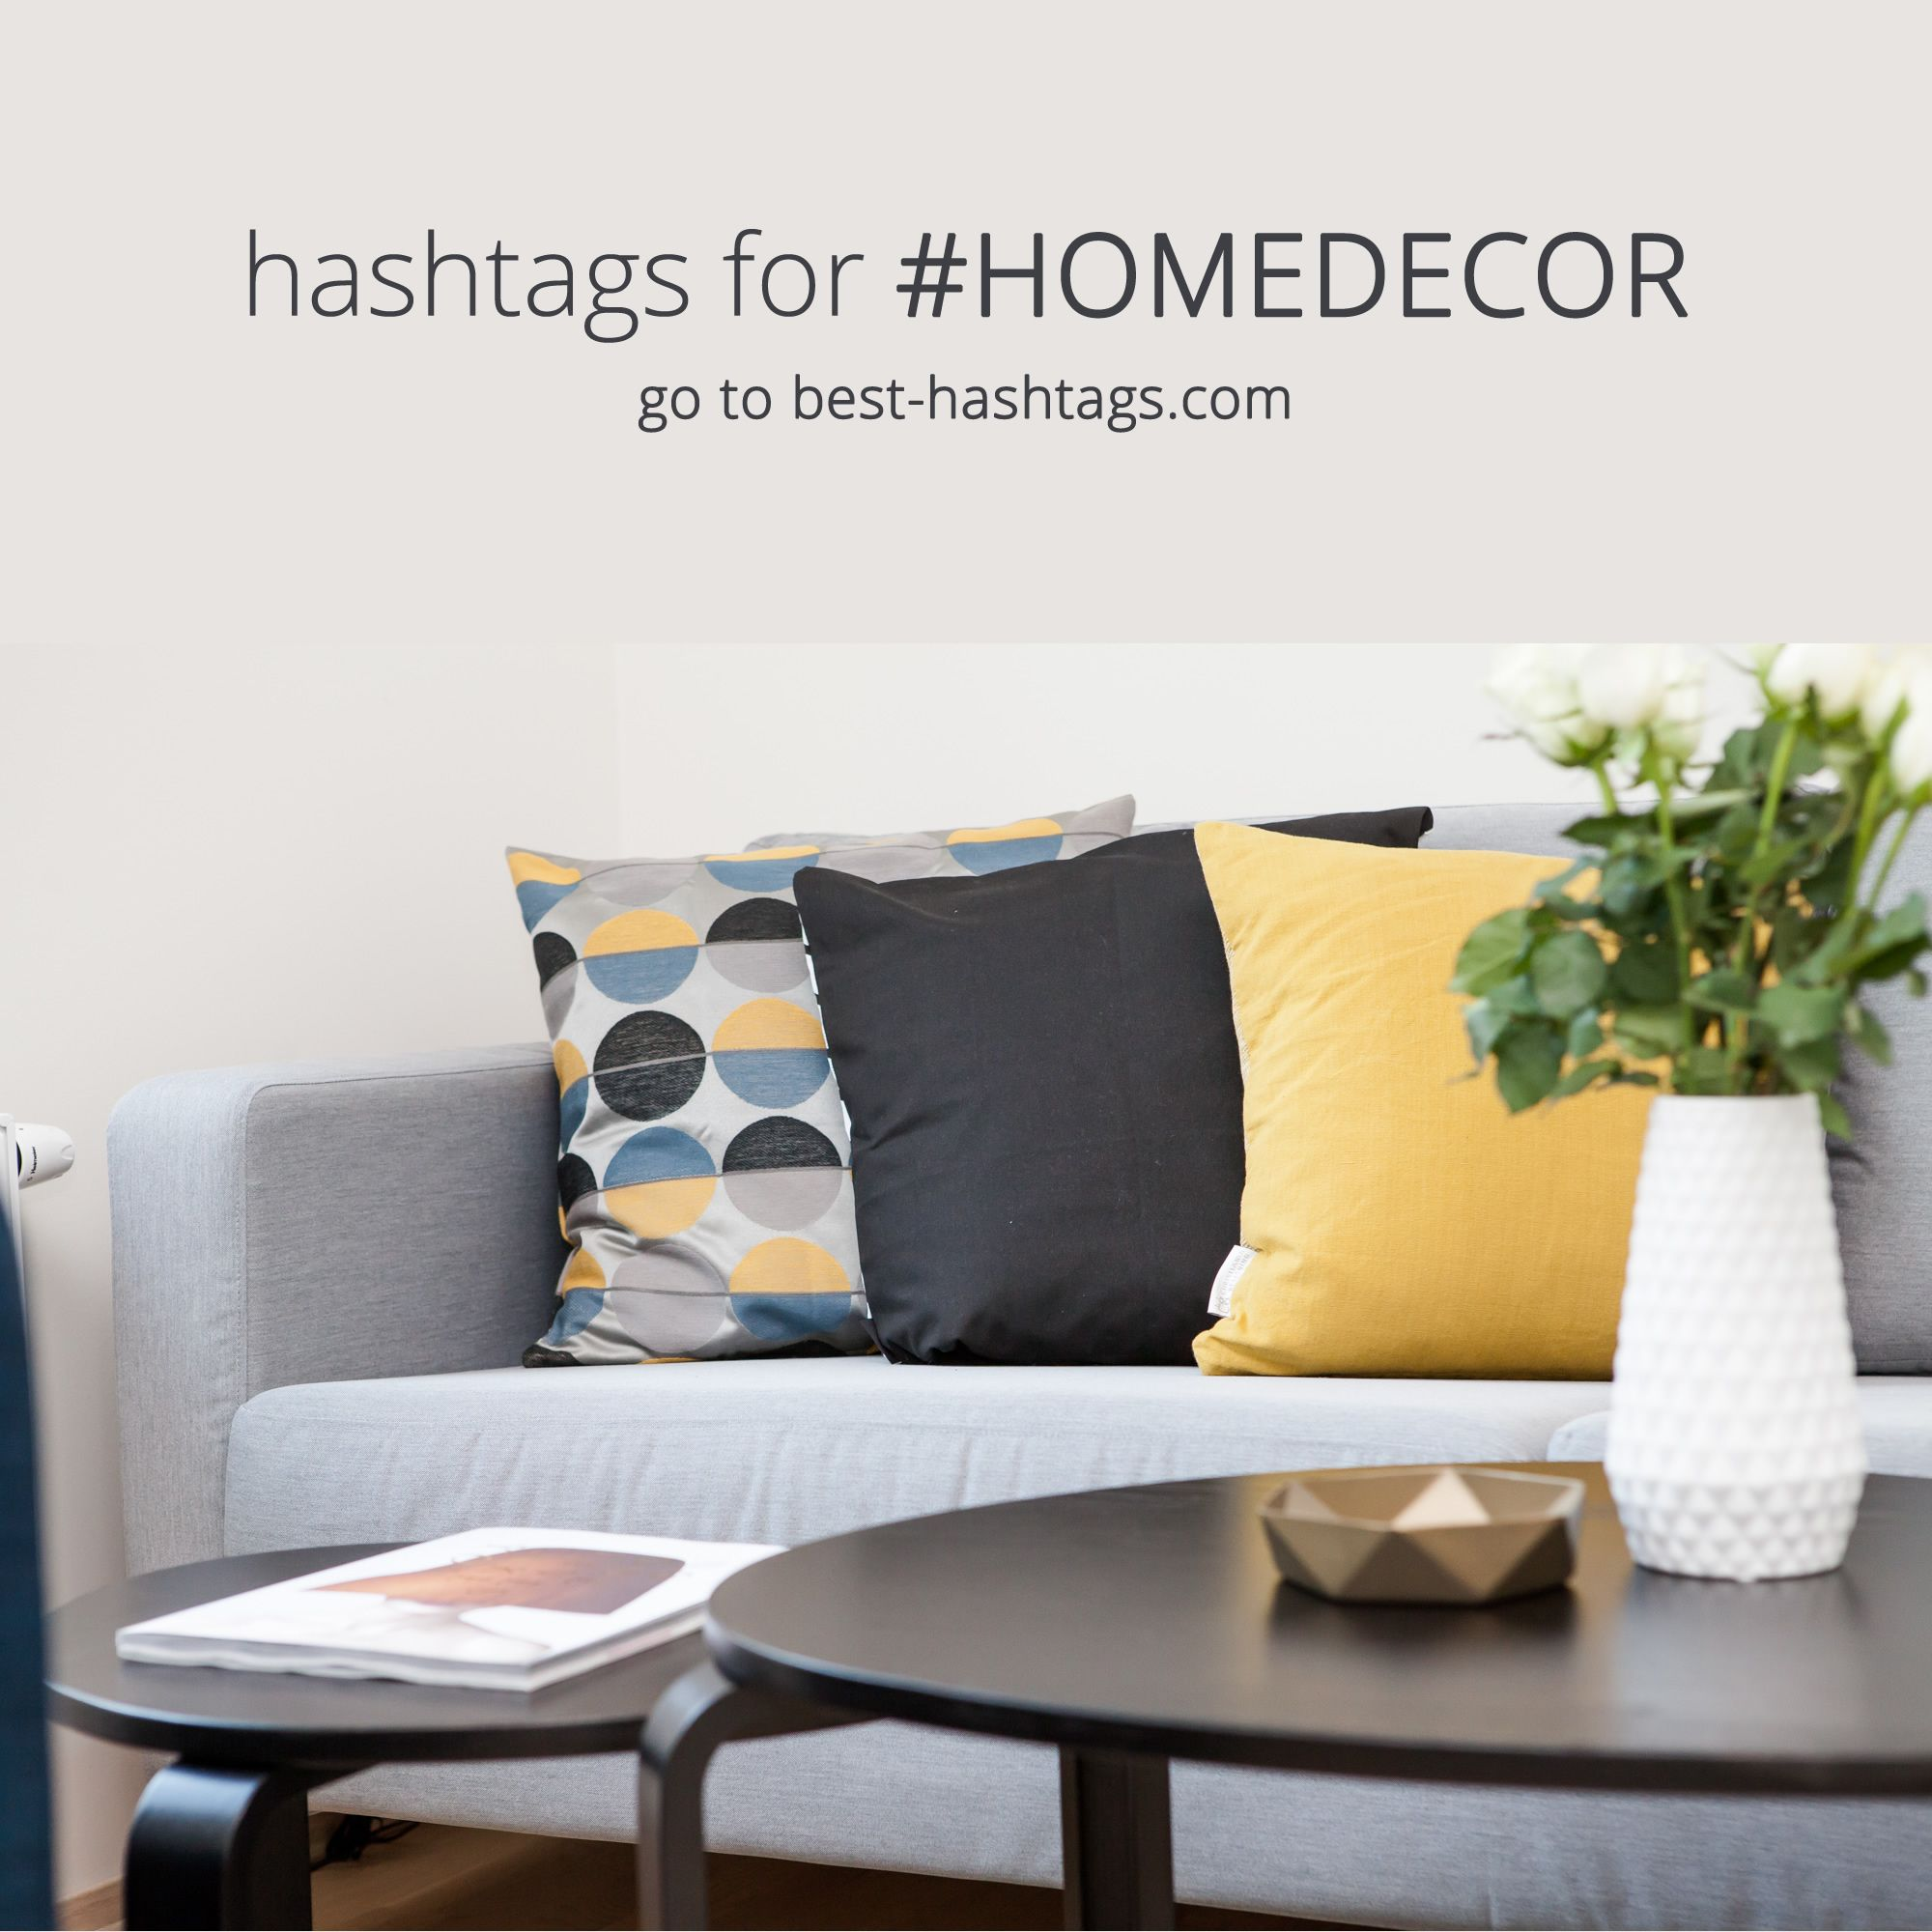 Most Popular Instagram Hashtags Used With Homedecor With Images